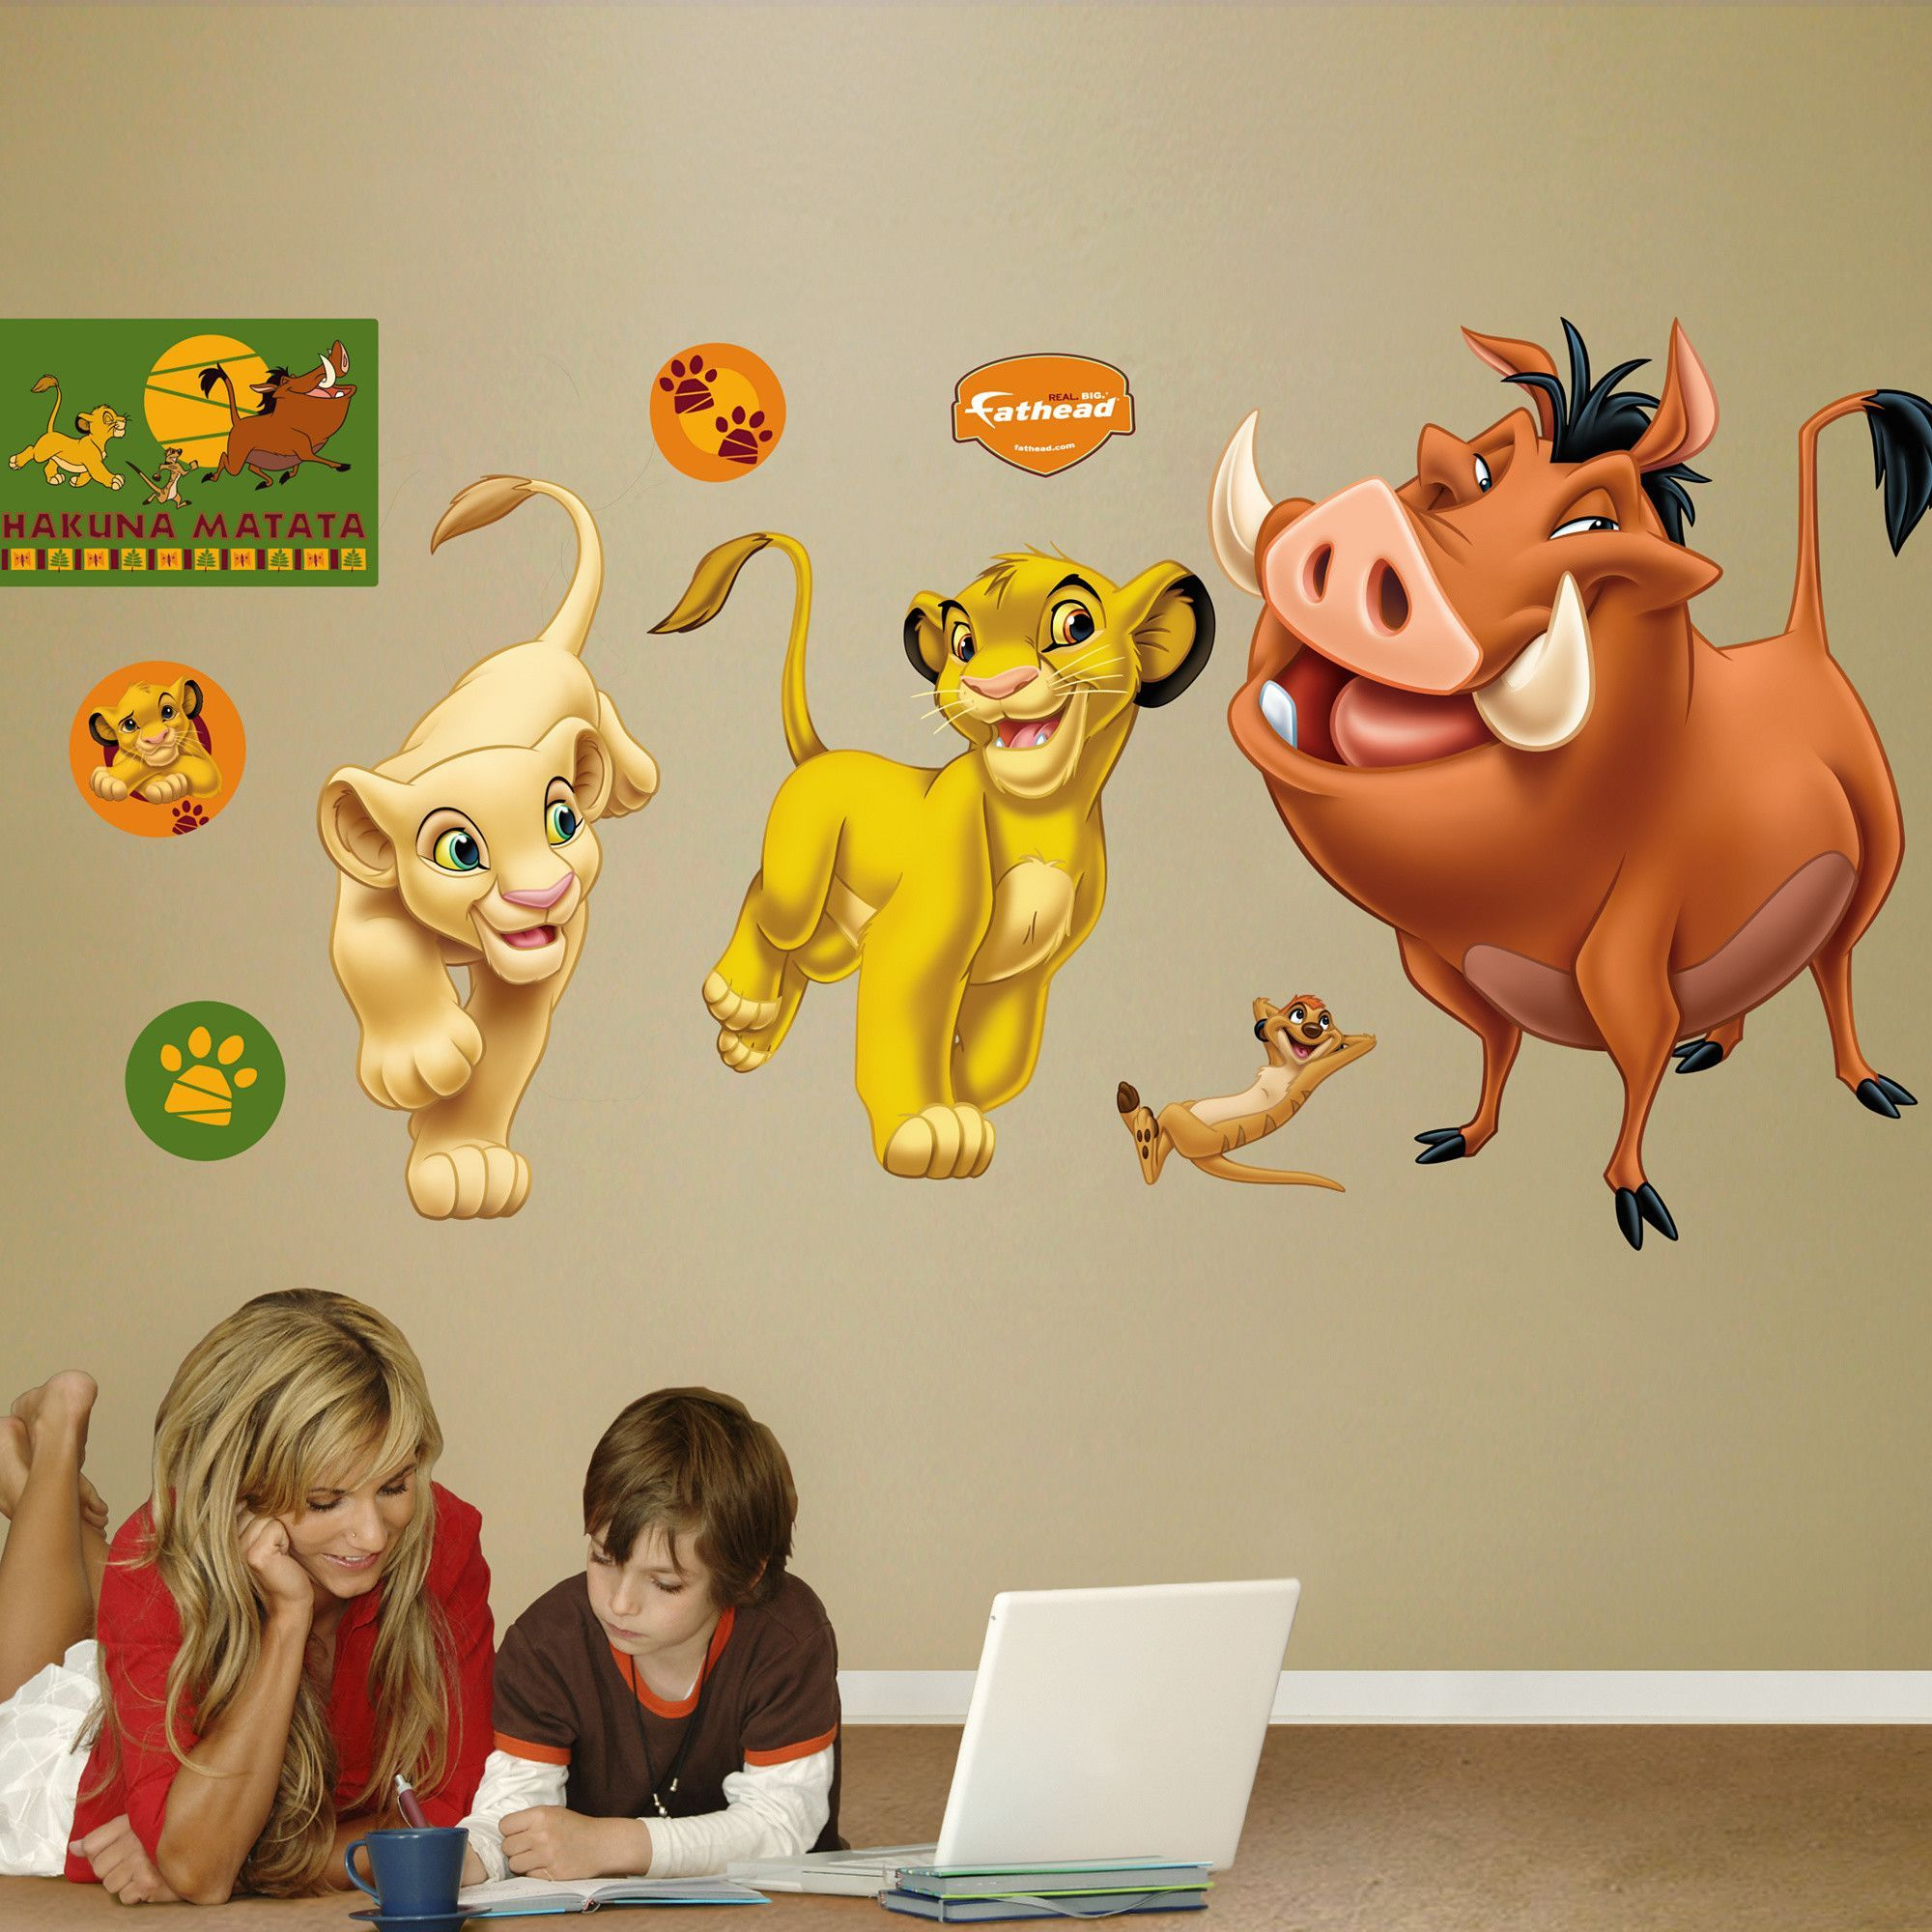 Fans Of The Lion King, Prove Your Dedication By Putting Your Passion On  Display With A Giant The Lion King Wall Decal From Fathead!